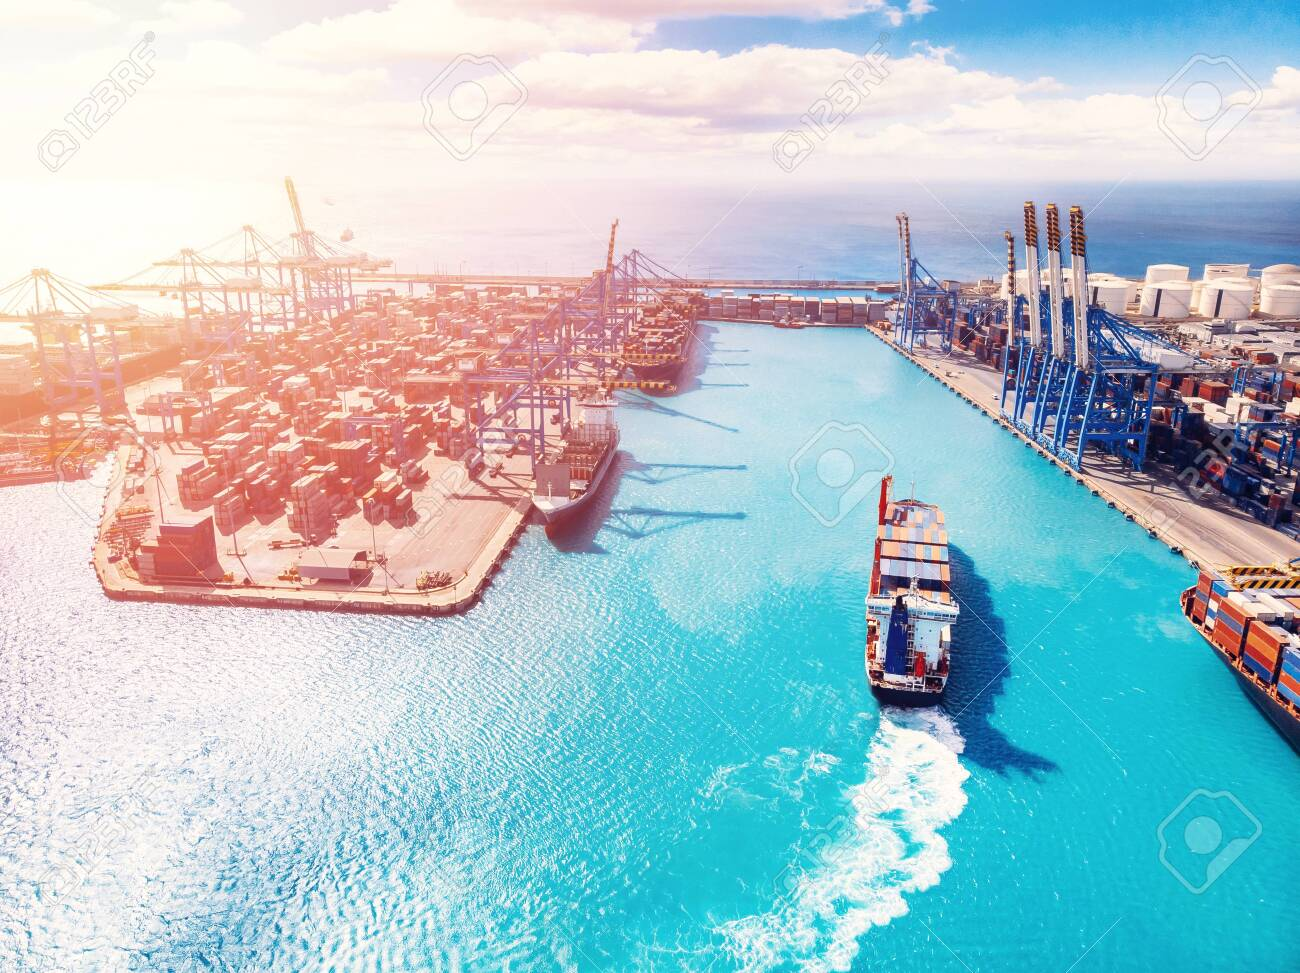 Cargo port business, logistics center. Ship is loading containers with crane. Aerial view. - 122206728